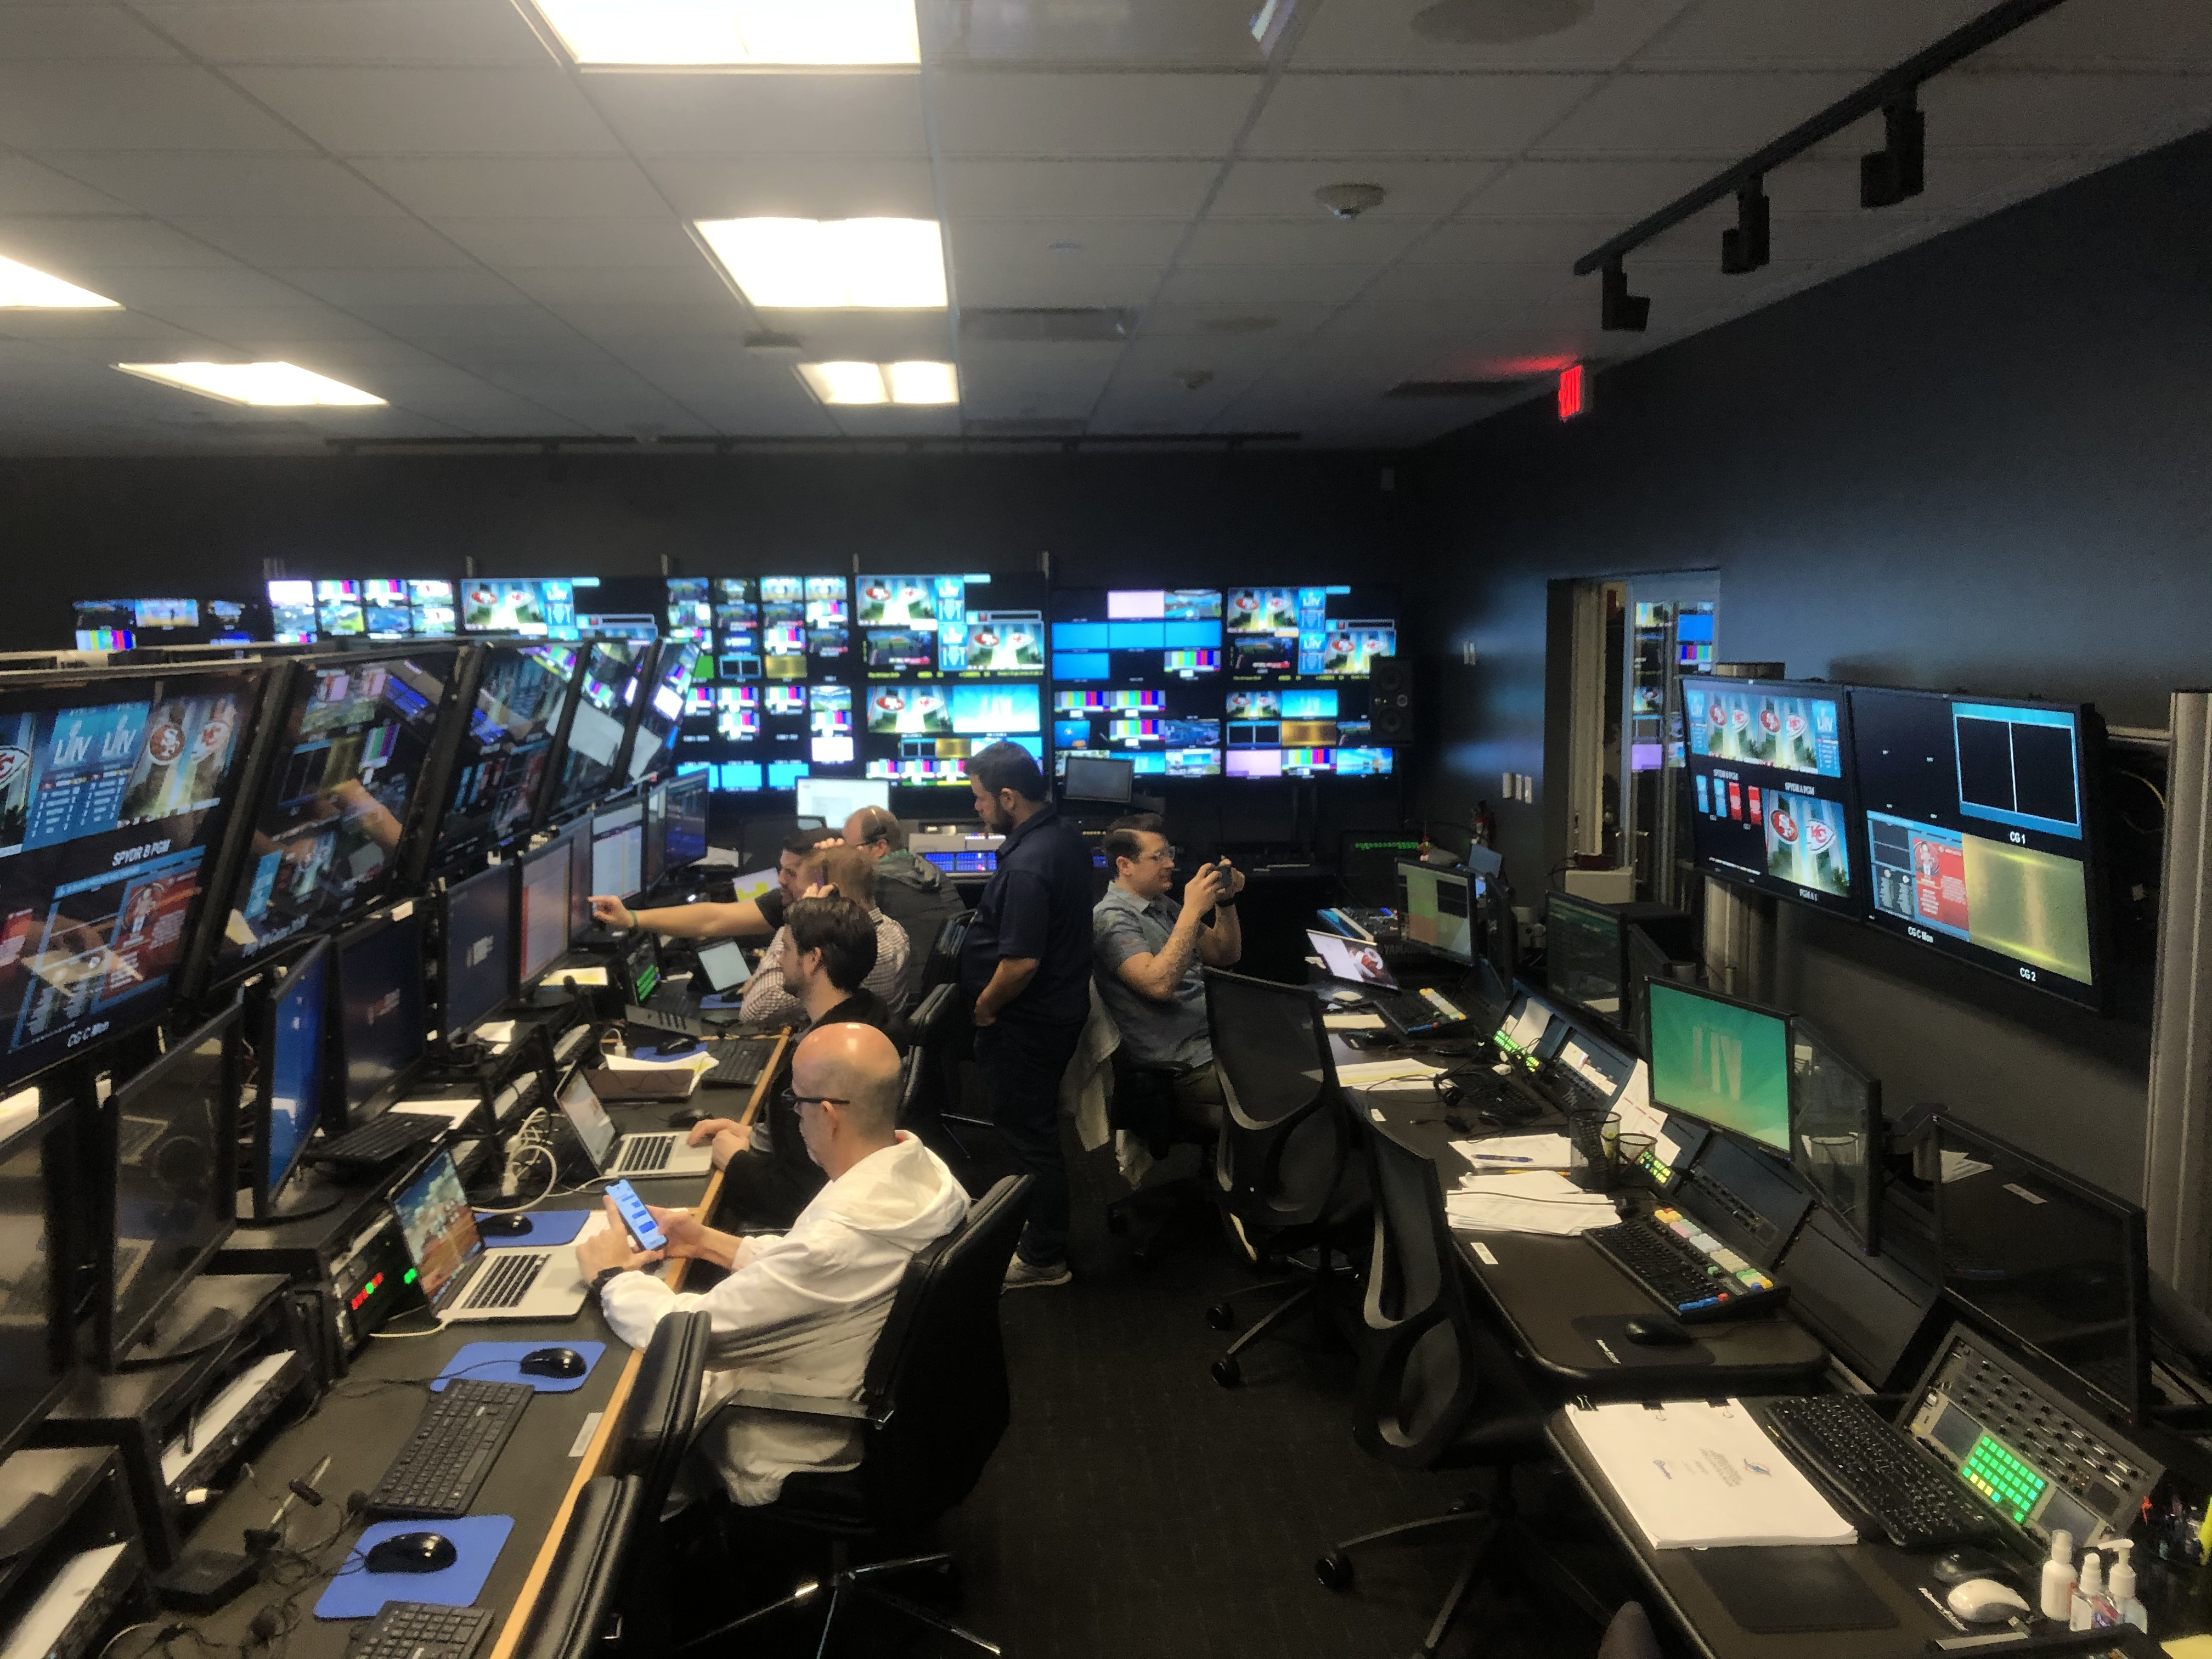 Control room at the Hard Rock Stadium